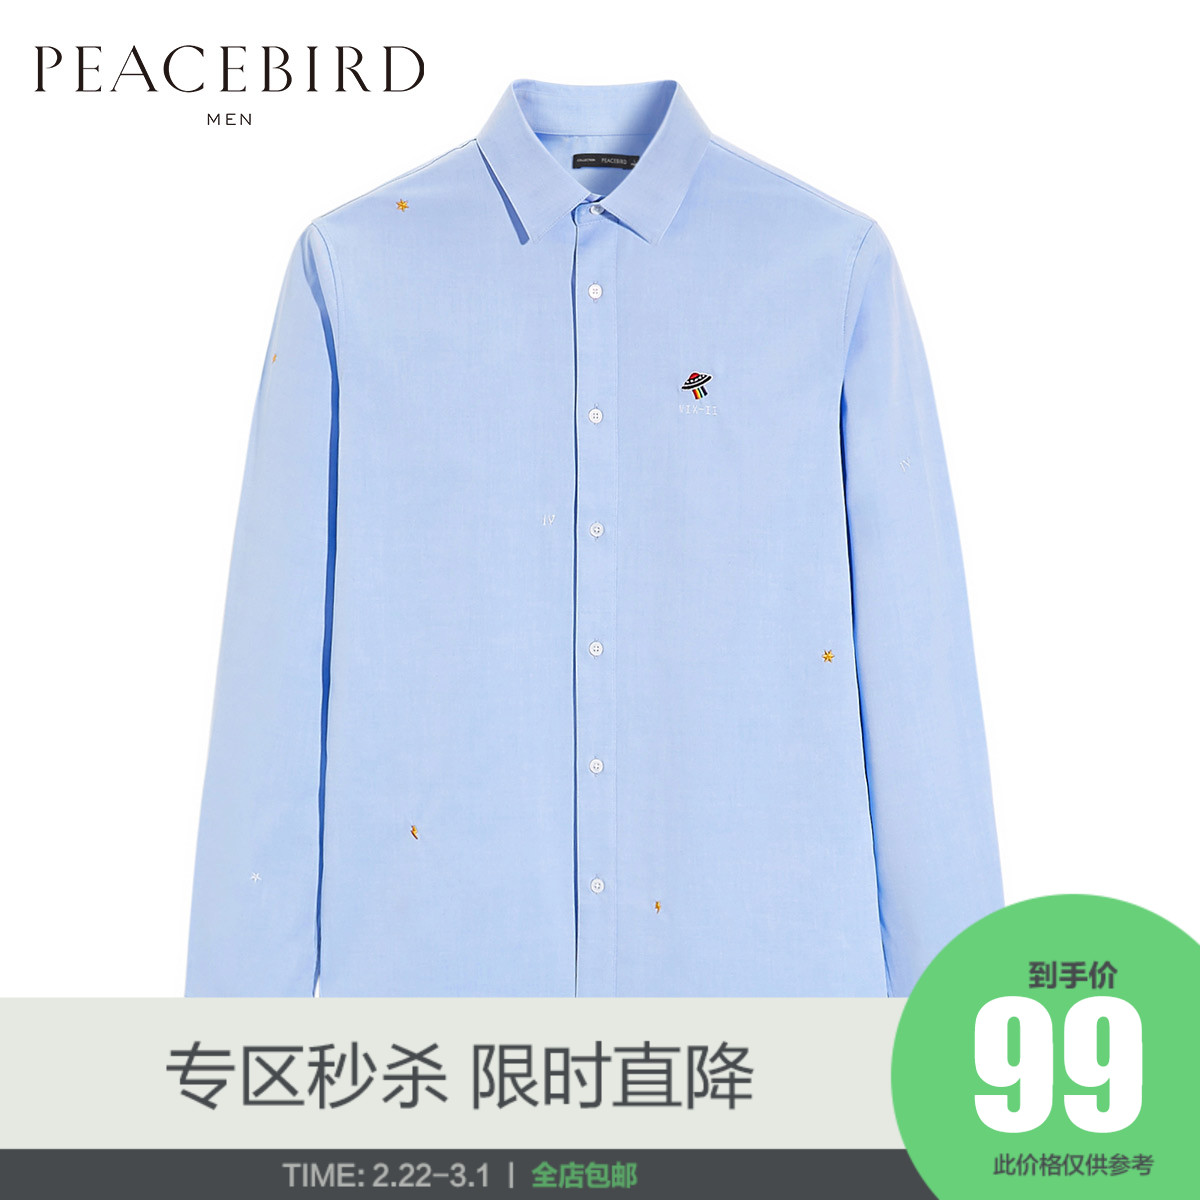 Taiping Bird Men's Dress Autumn New Blue Fashion Korean Edition Self-cultivation Individual Embroidery Decorated Leisure Long-sleeved Shirt